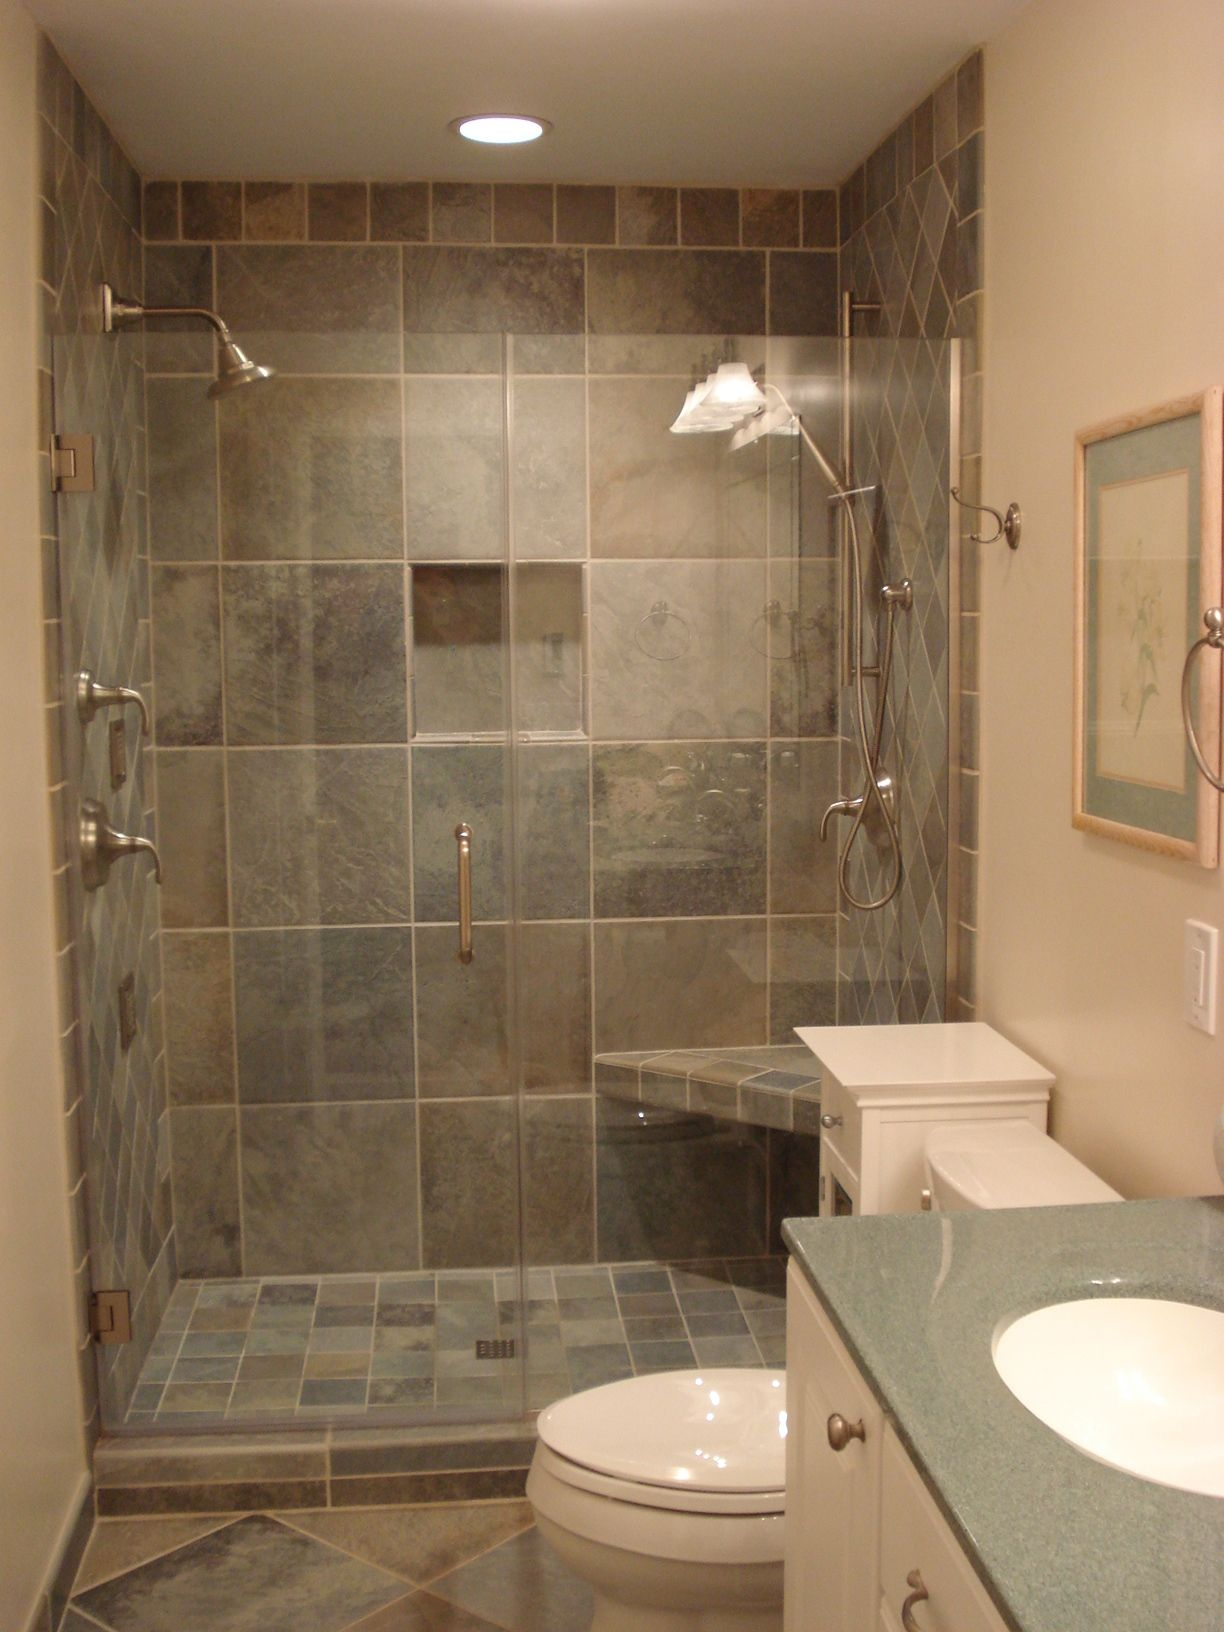 Best Bathroom Remodel Ideas You Must Have A Look Pinterest - Is a bathroom remodel worth it